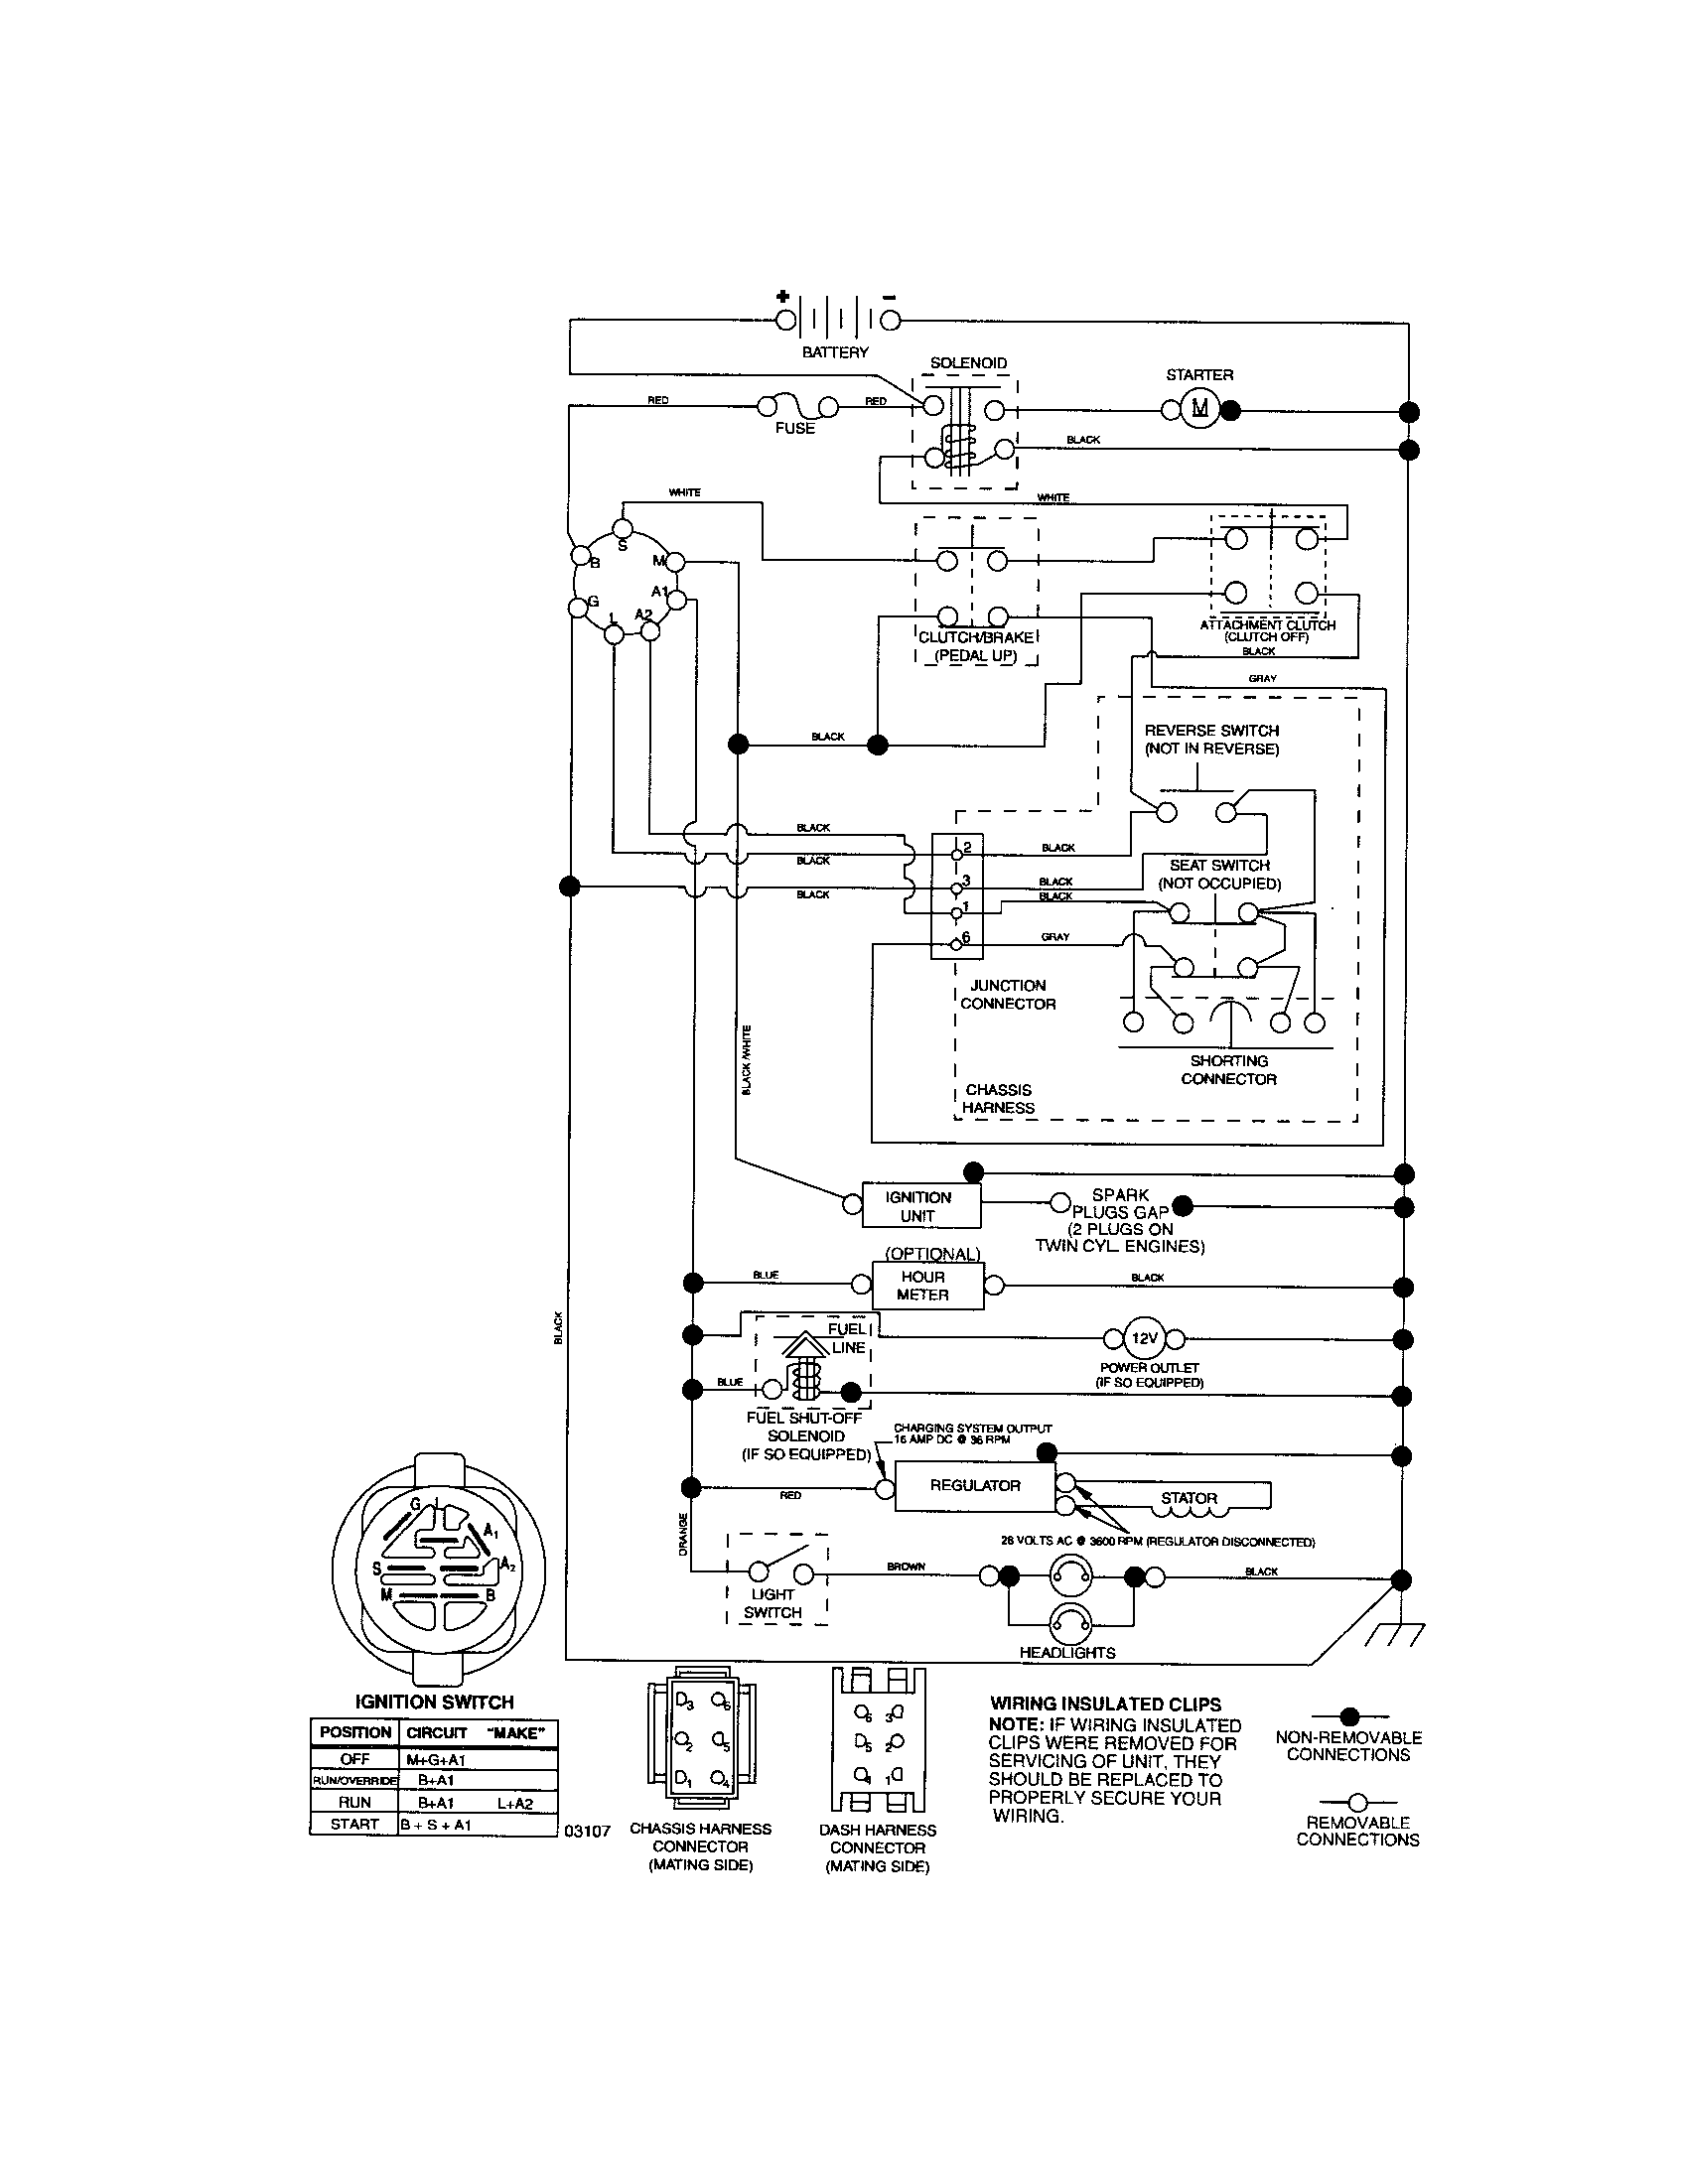 6af5f1447fd13c8443376822ddc1e105 craftsman riding mower electrical diagram wiring diagram craftsman